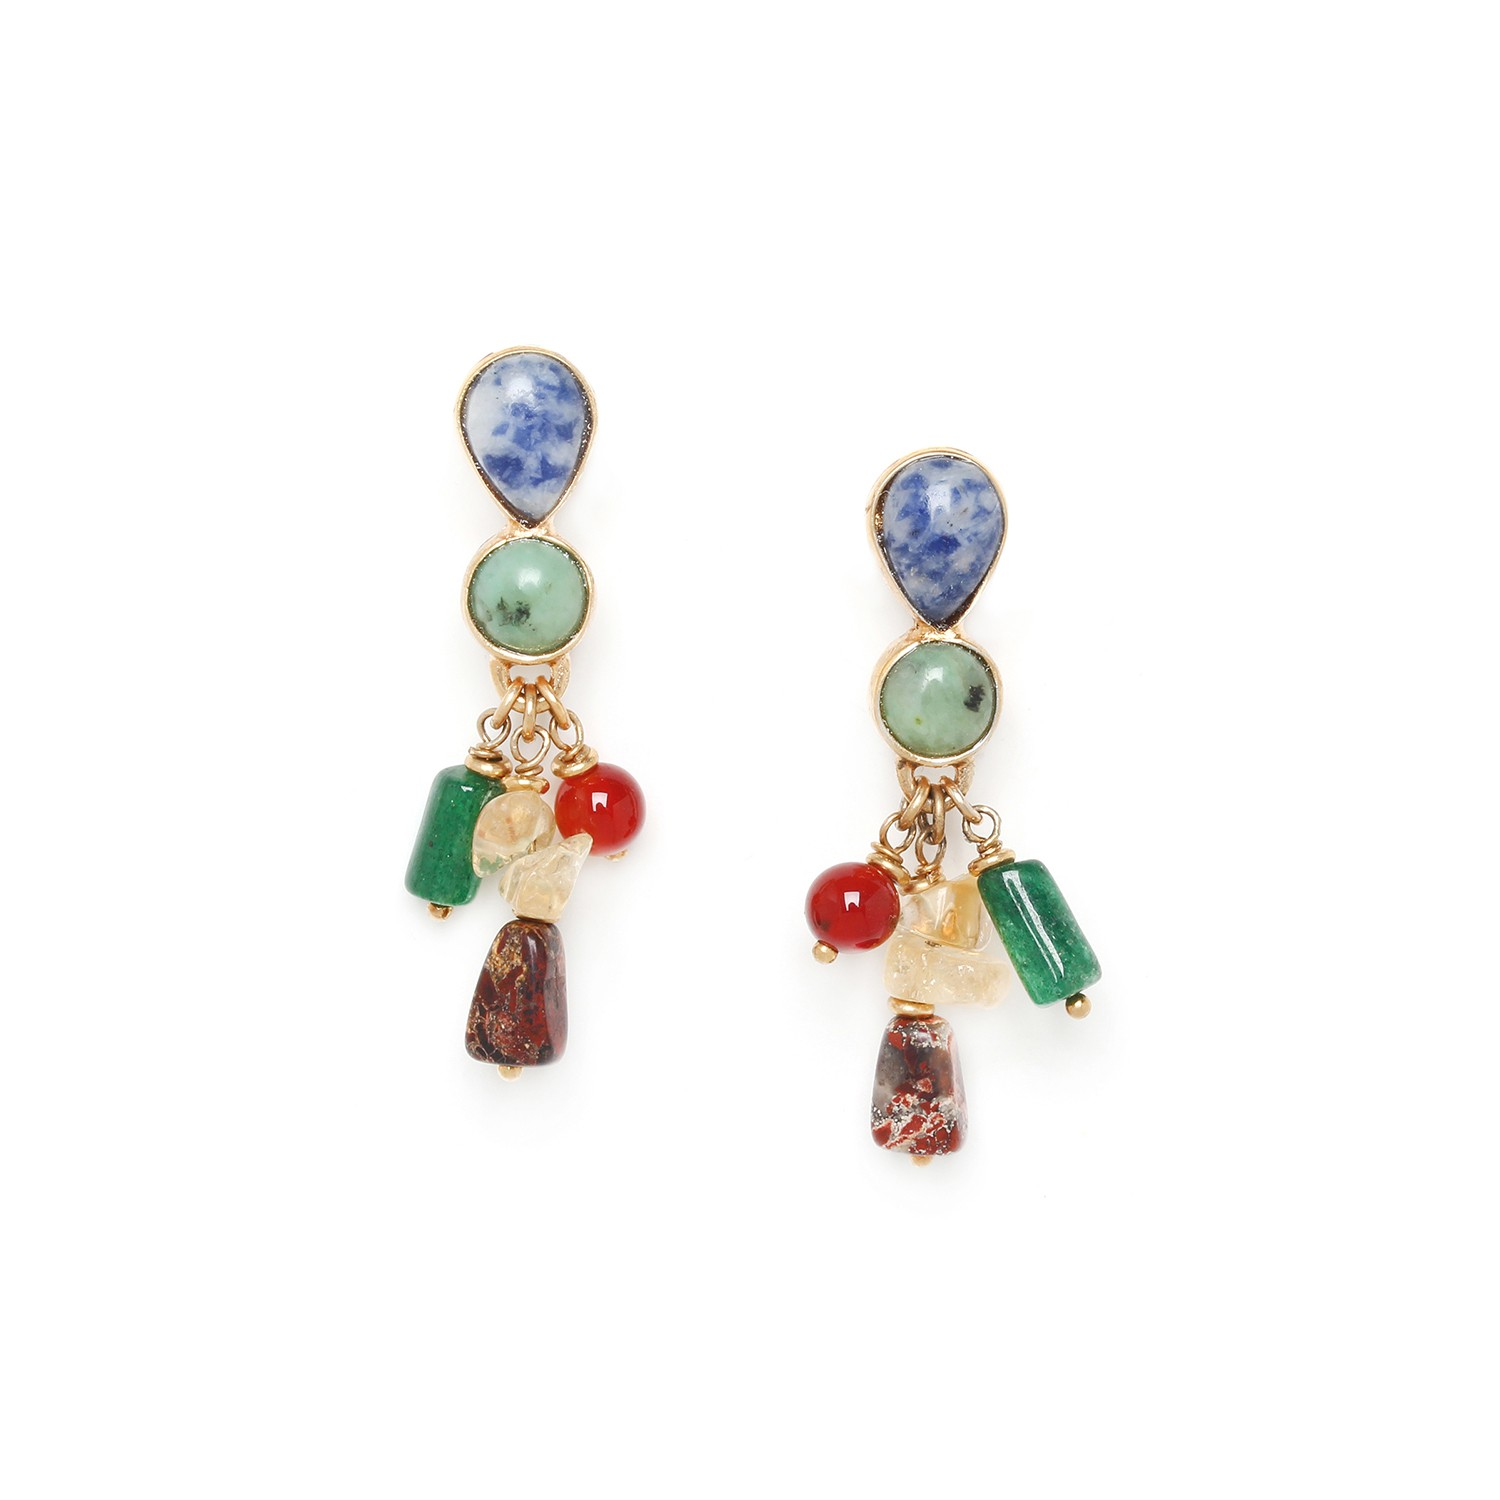 MINERA dangles earrings